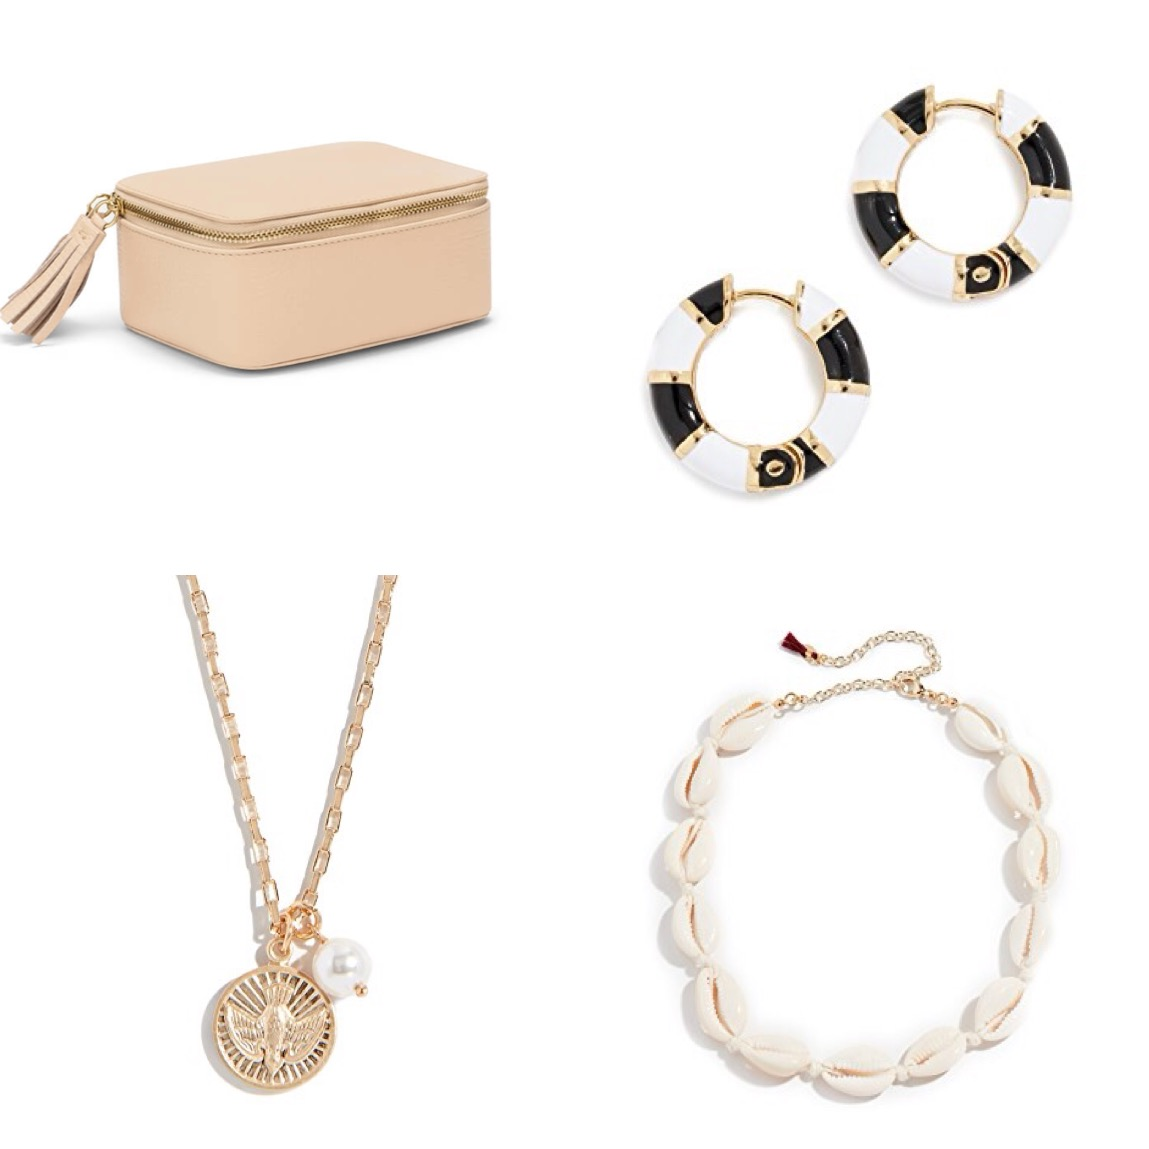 Holiday jewelry gift guide under $80 - Find ideas for your best friends and your family with a selection of trendy jewels under $80